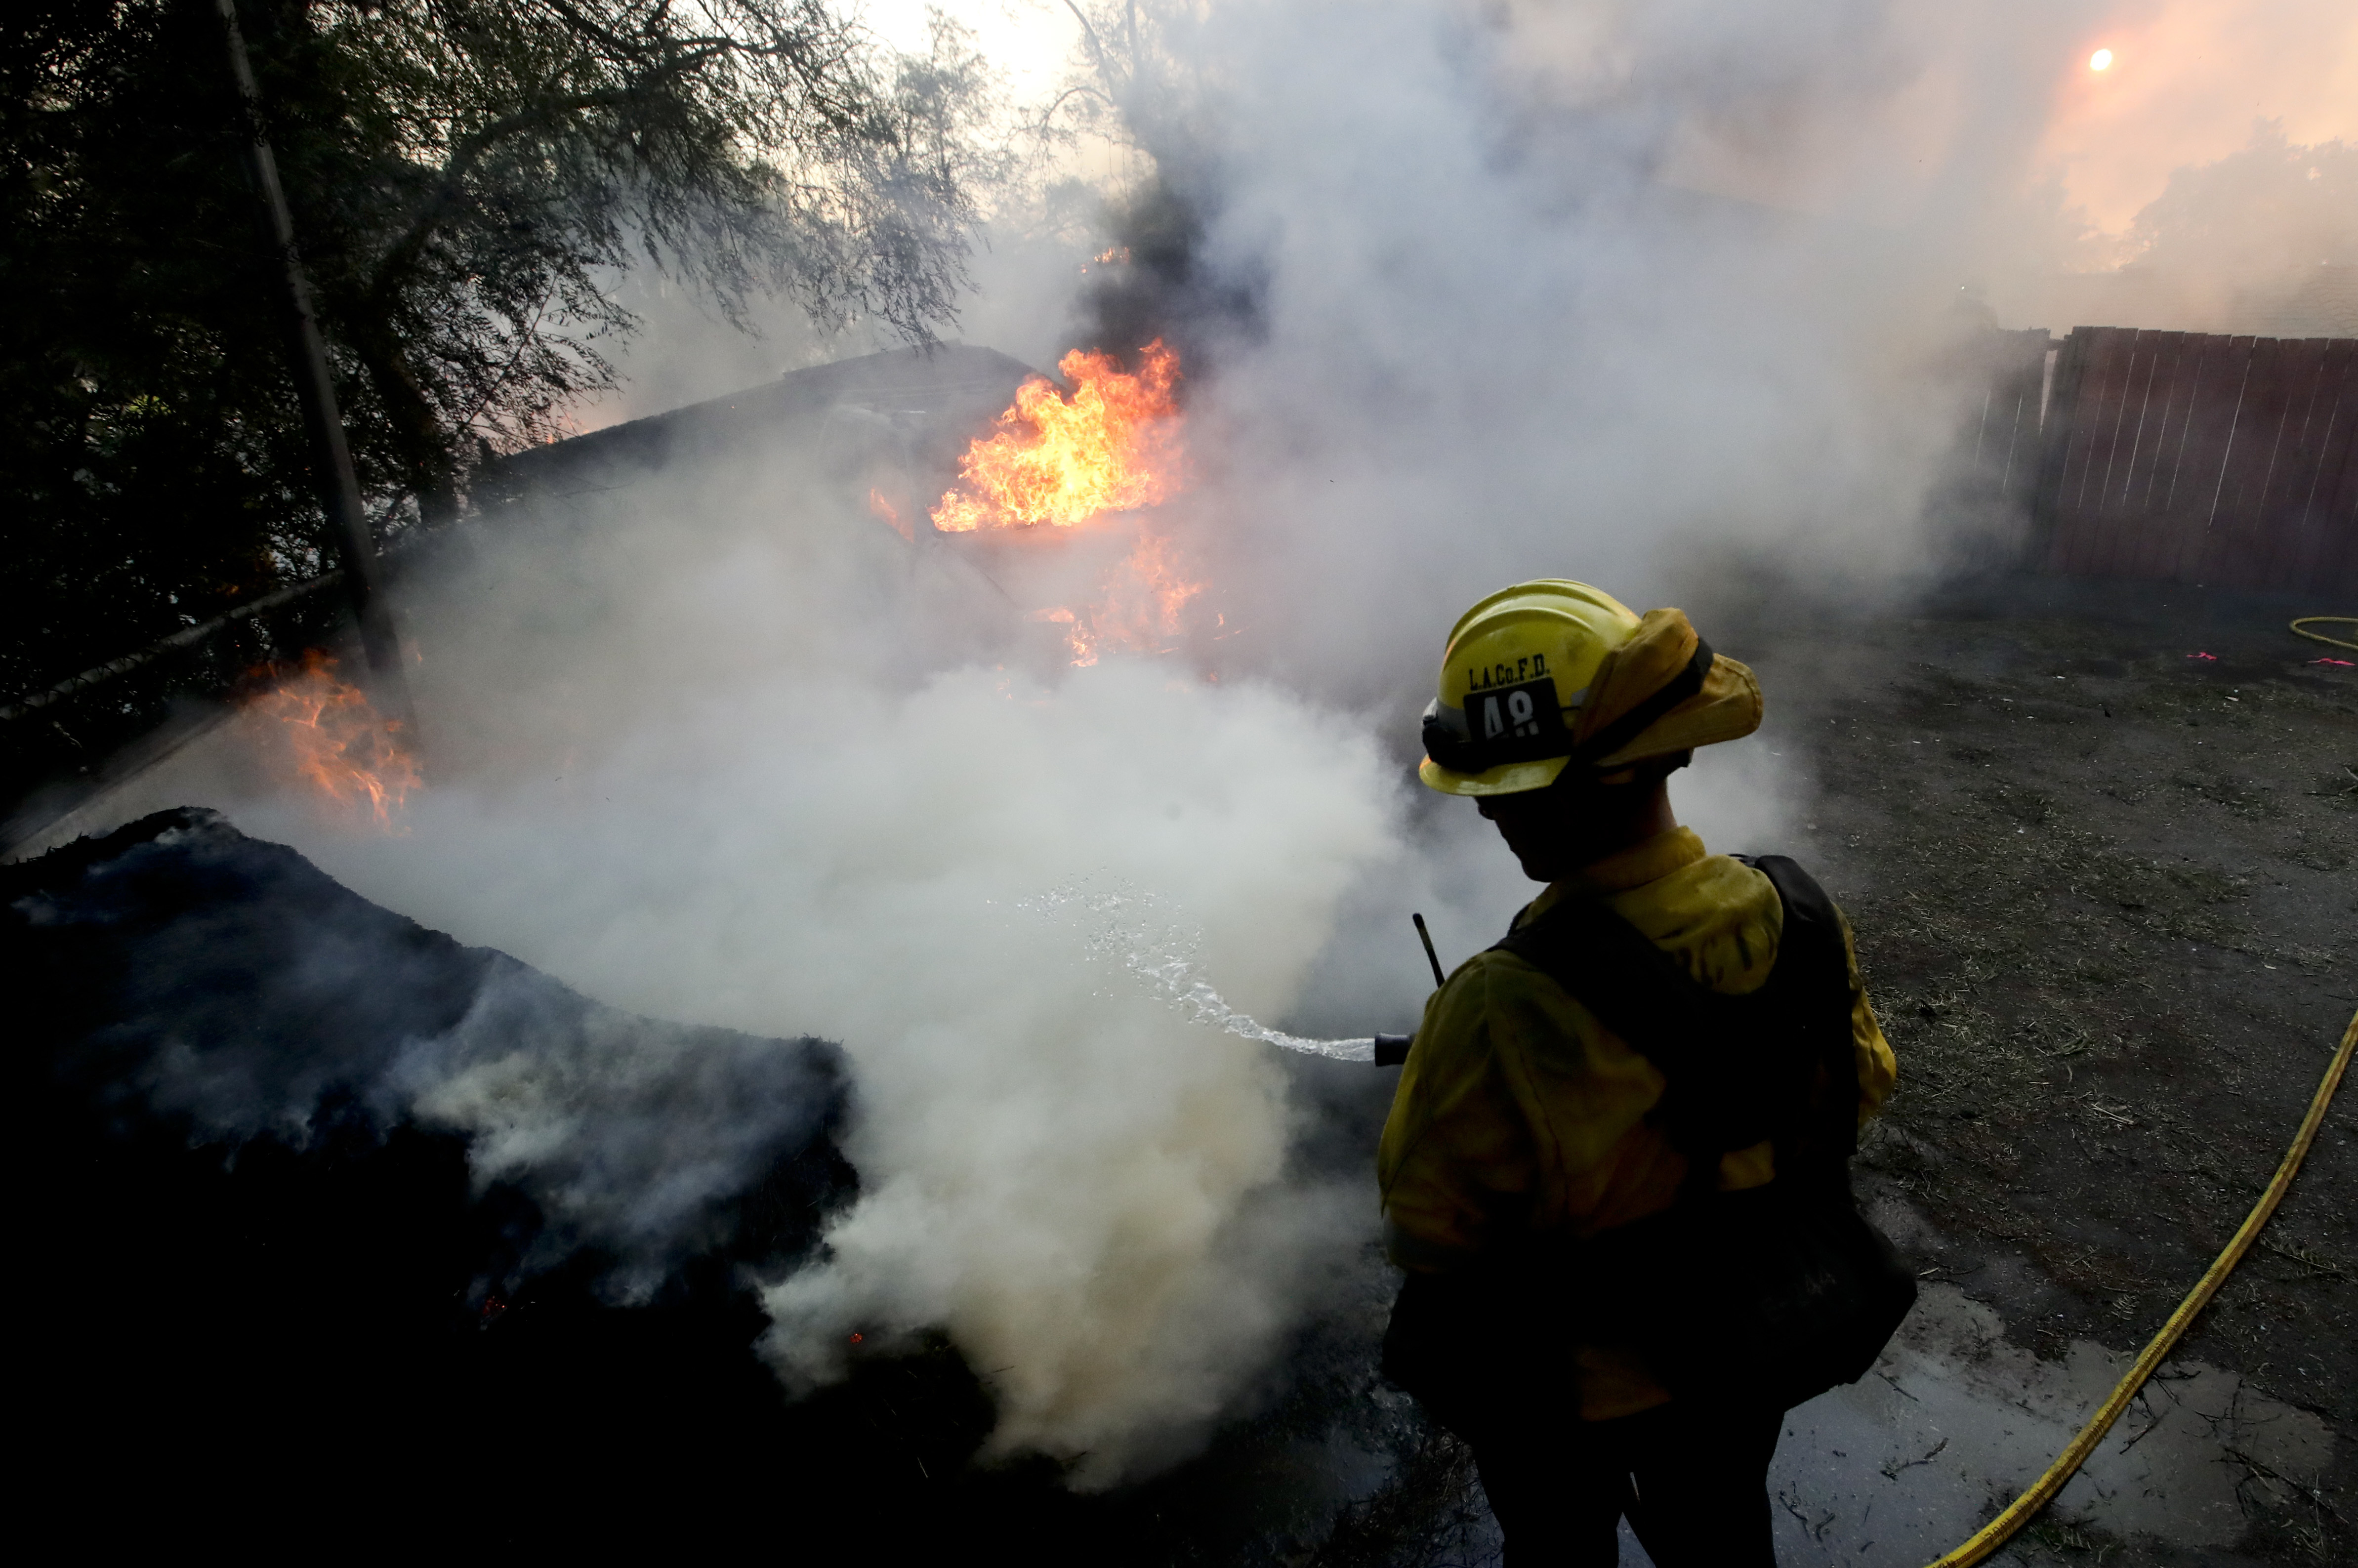 A Los Angeles County firefighter puts water on a burning car during a wildfire in the Lake View Terrace area of Los Angeles Tuesday, Dec. 5, 2017. For the second time in two months, wind-driven fires tore through California communities in the middle of the night, leaving rows of homes and a psychiatric hospital in ruins Tuesday and sending tens of thousands of people fleeing for their lives. (AP Photo/Chris Carlson)